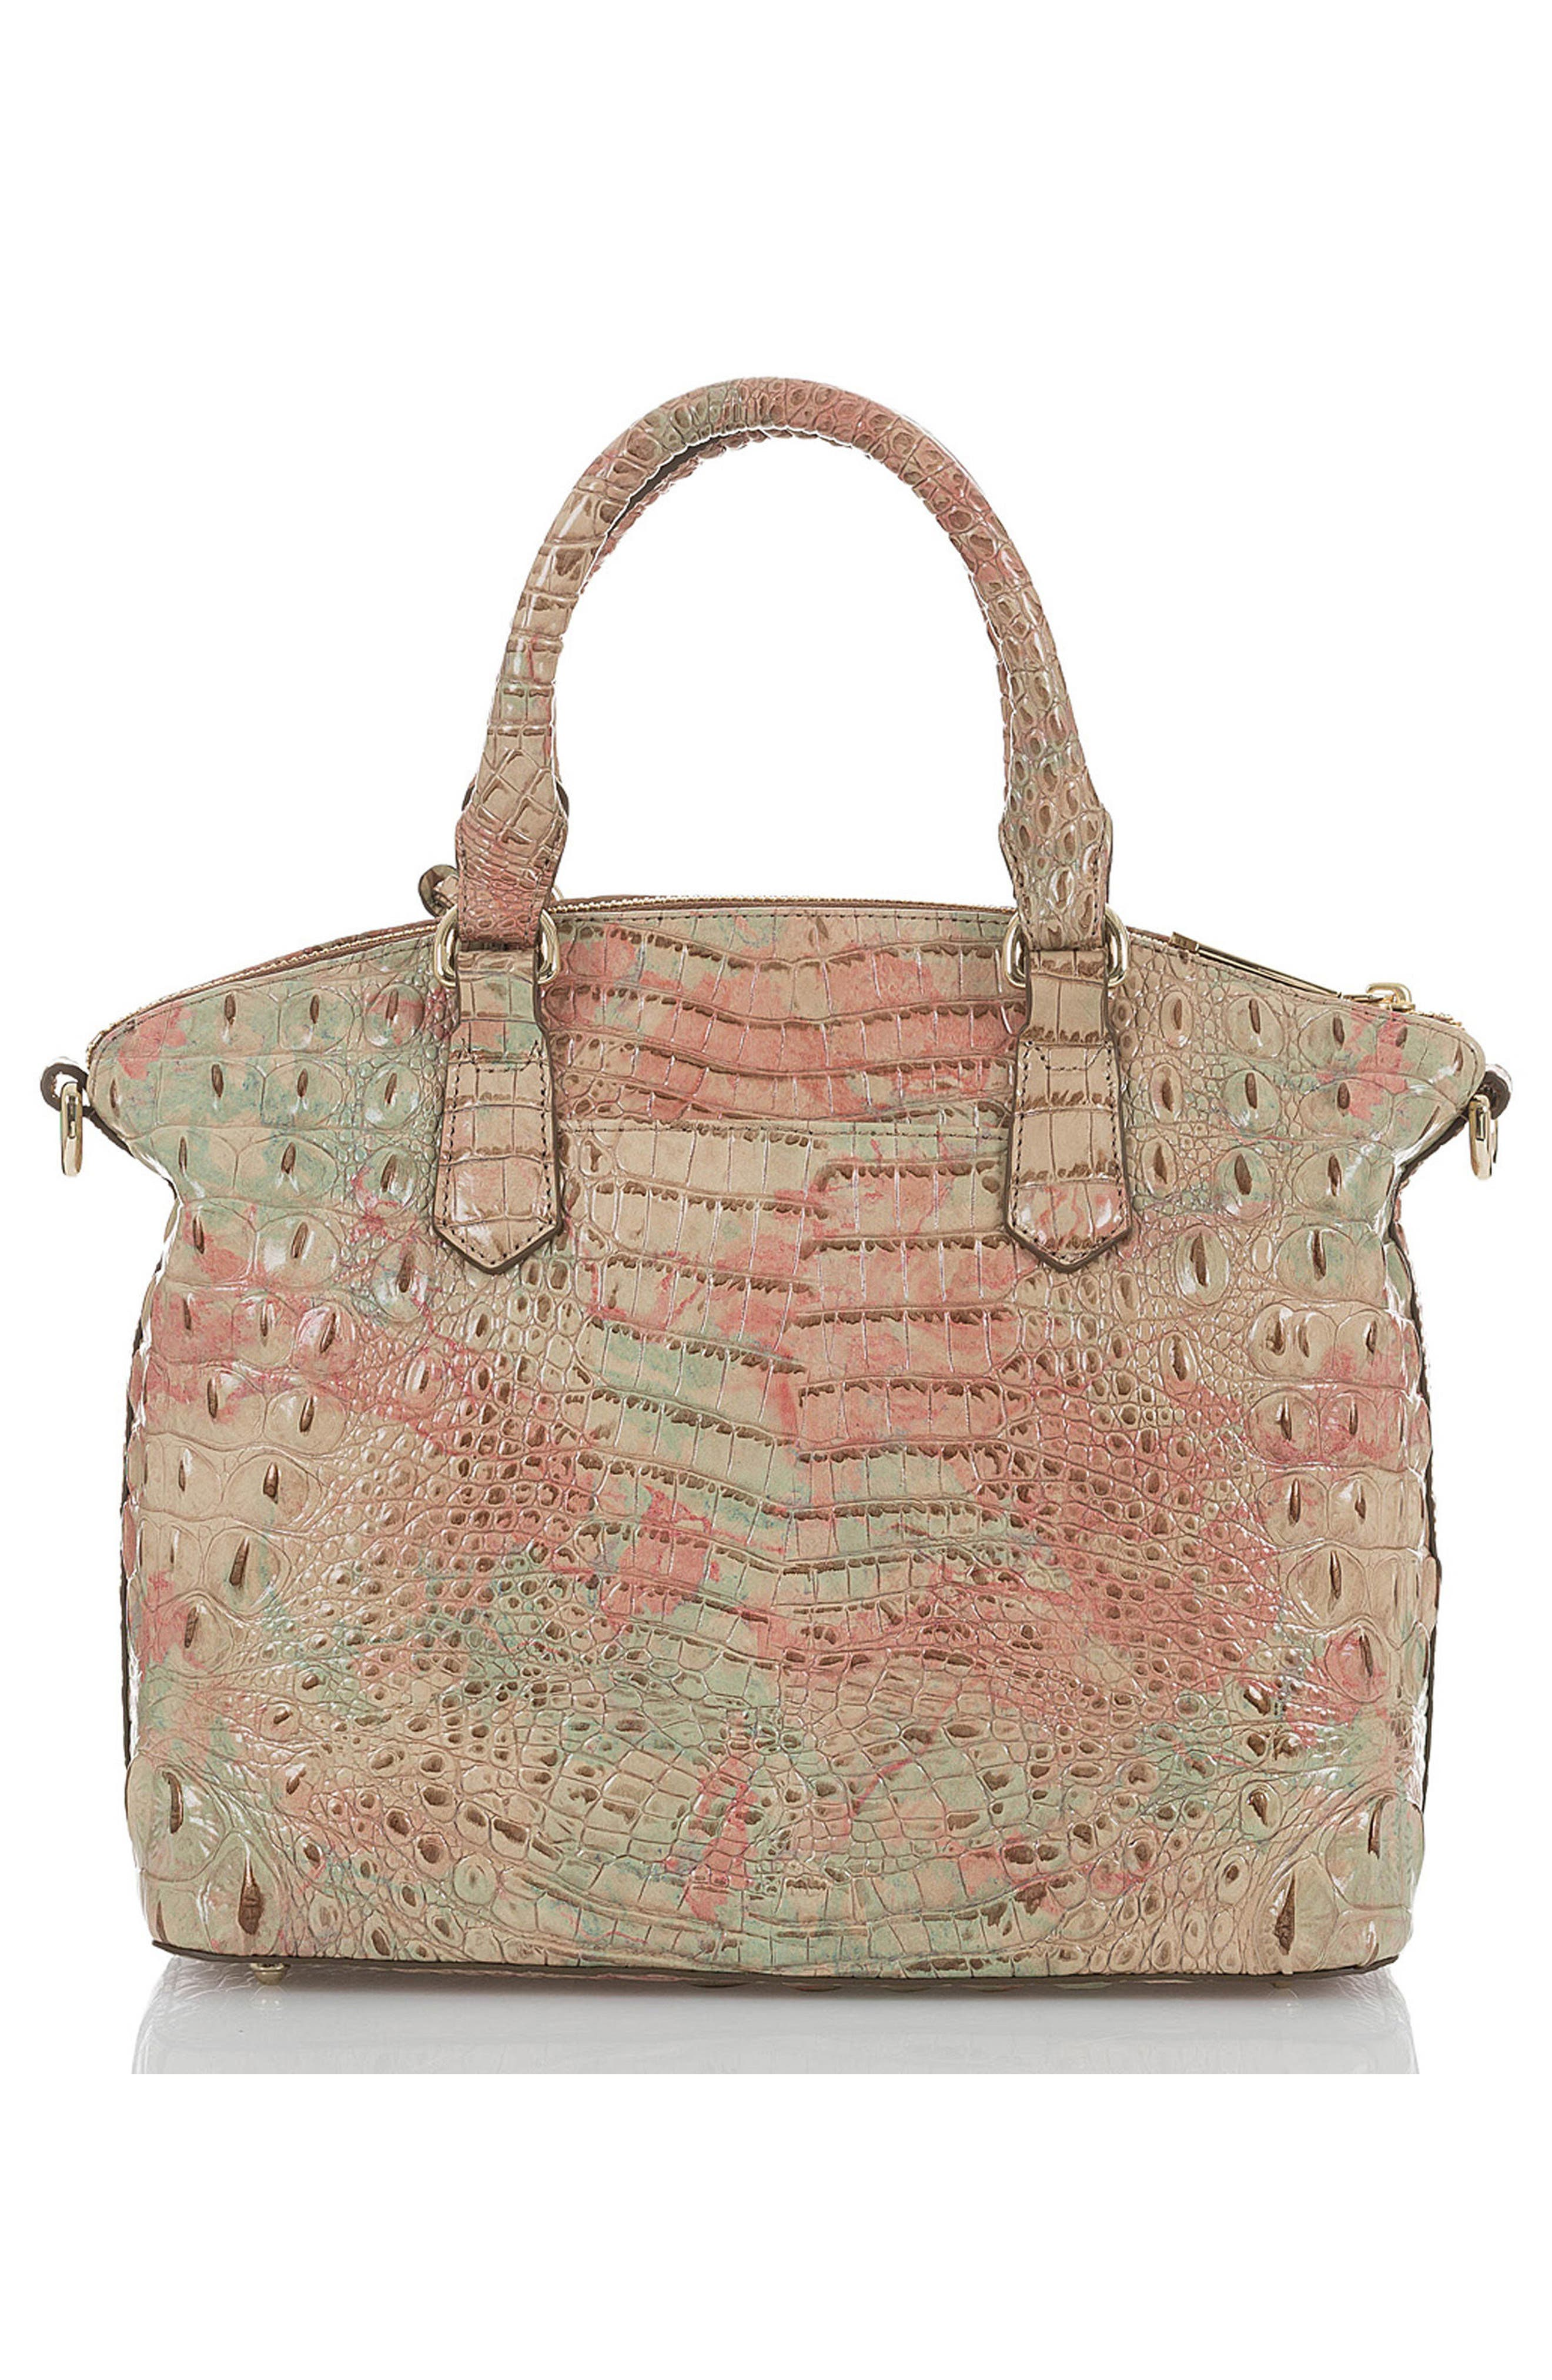 'Medium Duxbury' Croc Embossed Leather Satchel,                             Alternate thumbnail 3, color,                             Sahara